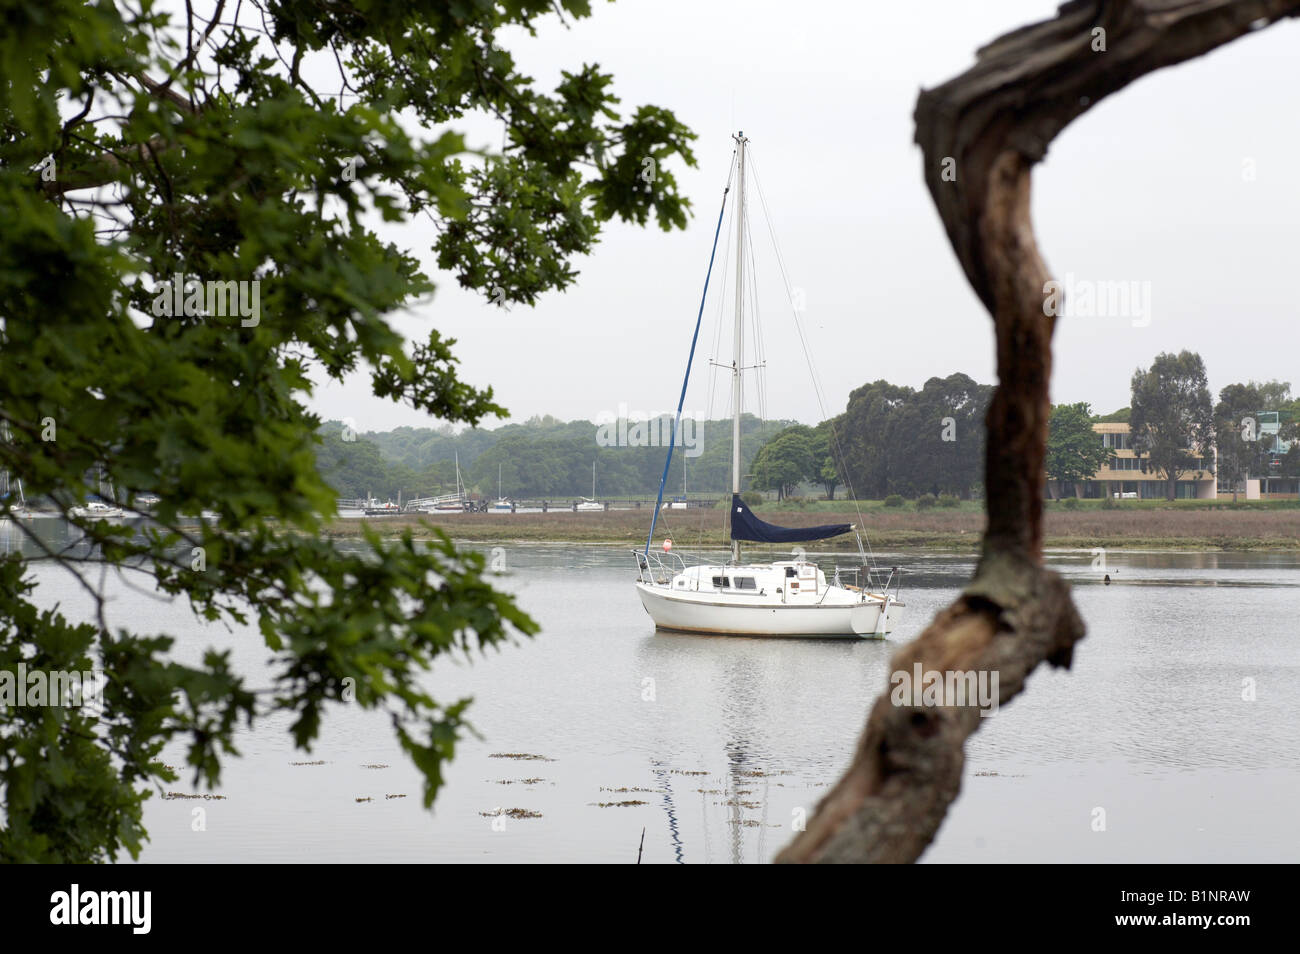 Yacht boat on the solent river in Hampshire England UK - Stock Image